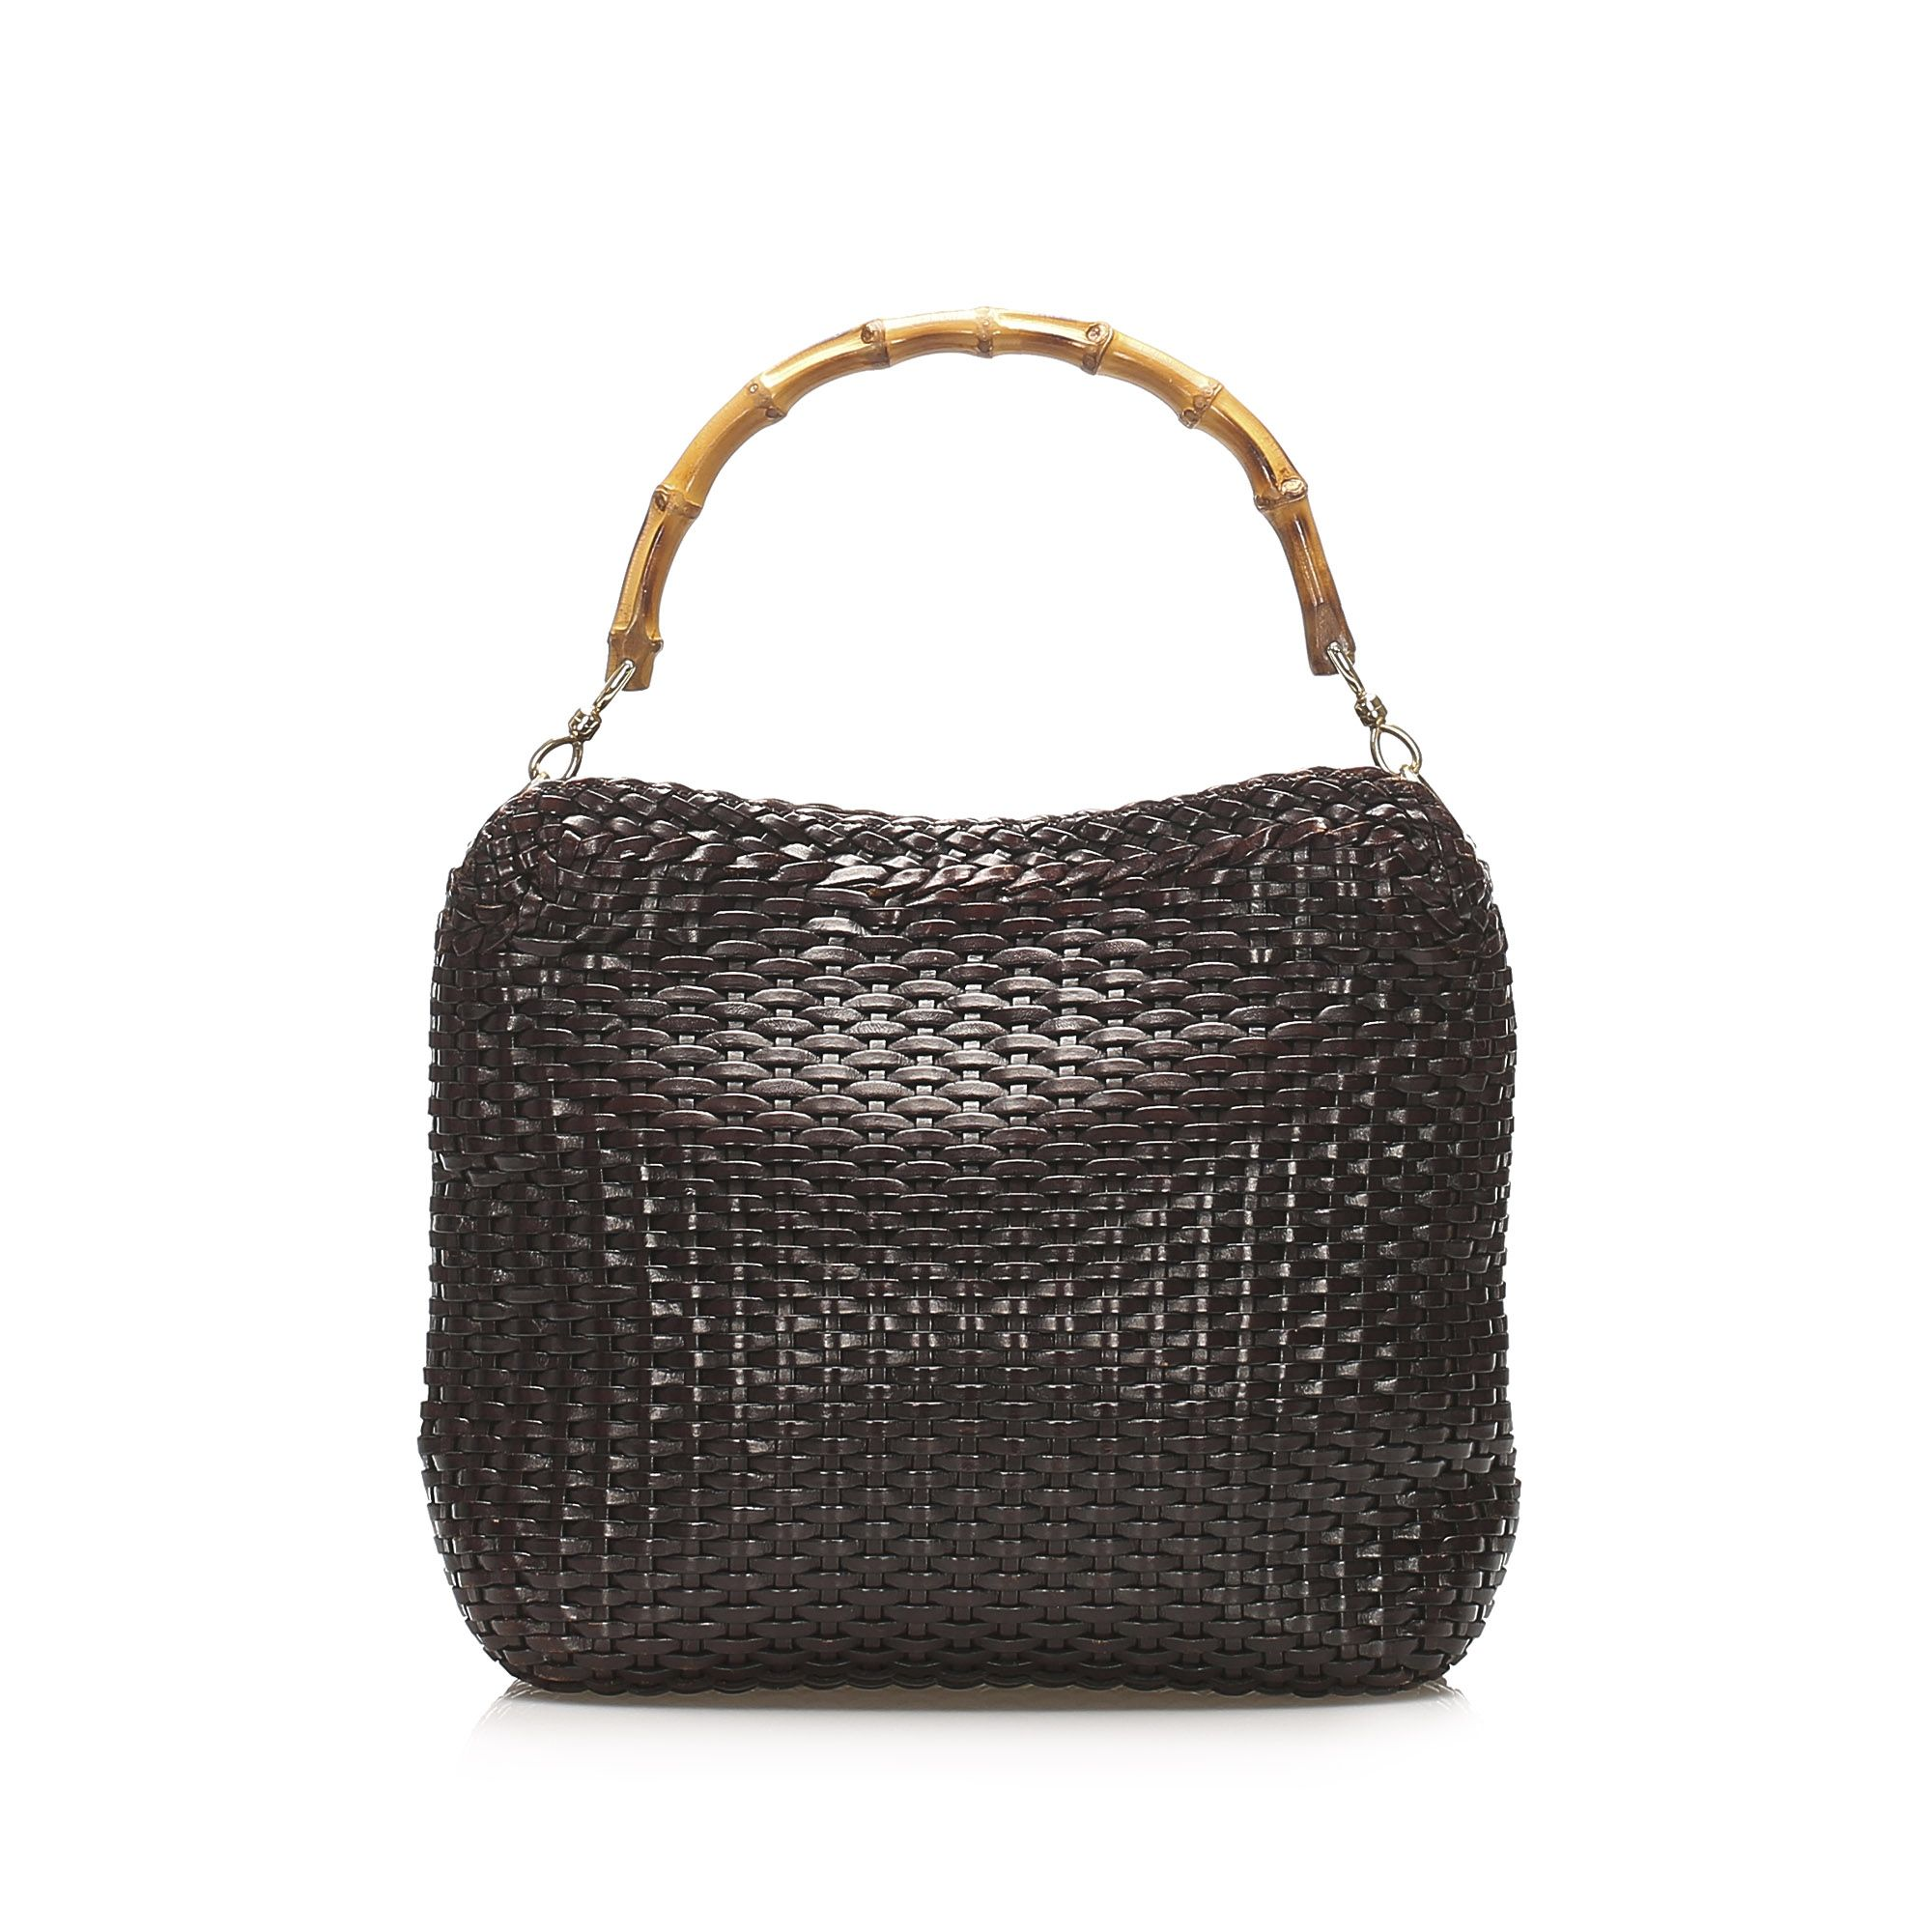 Vintage Gucci Bamboo Woven Leather Satchel Brown